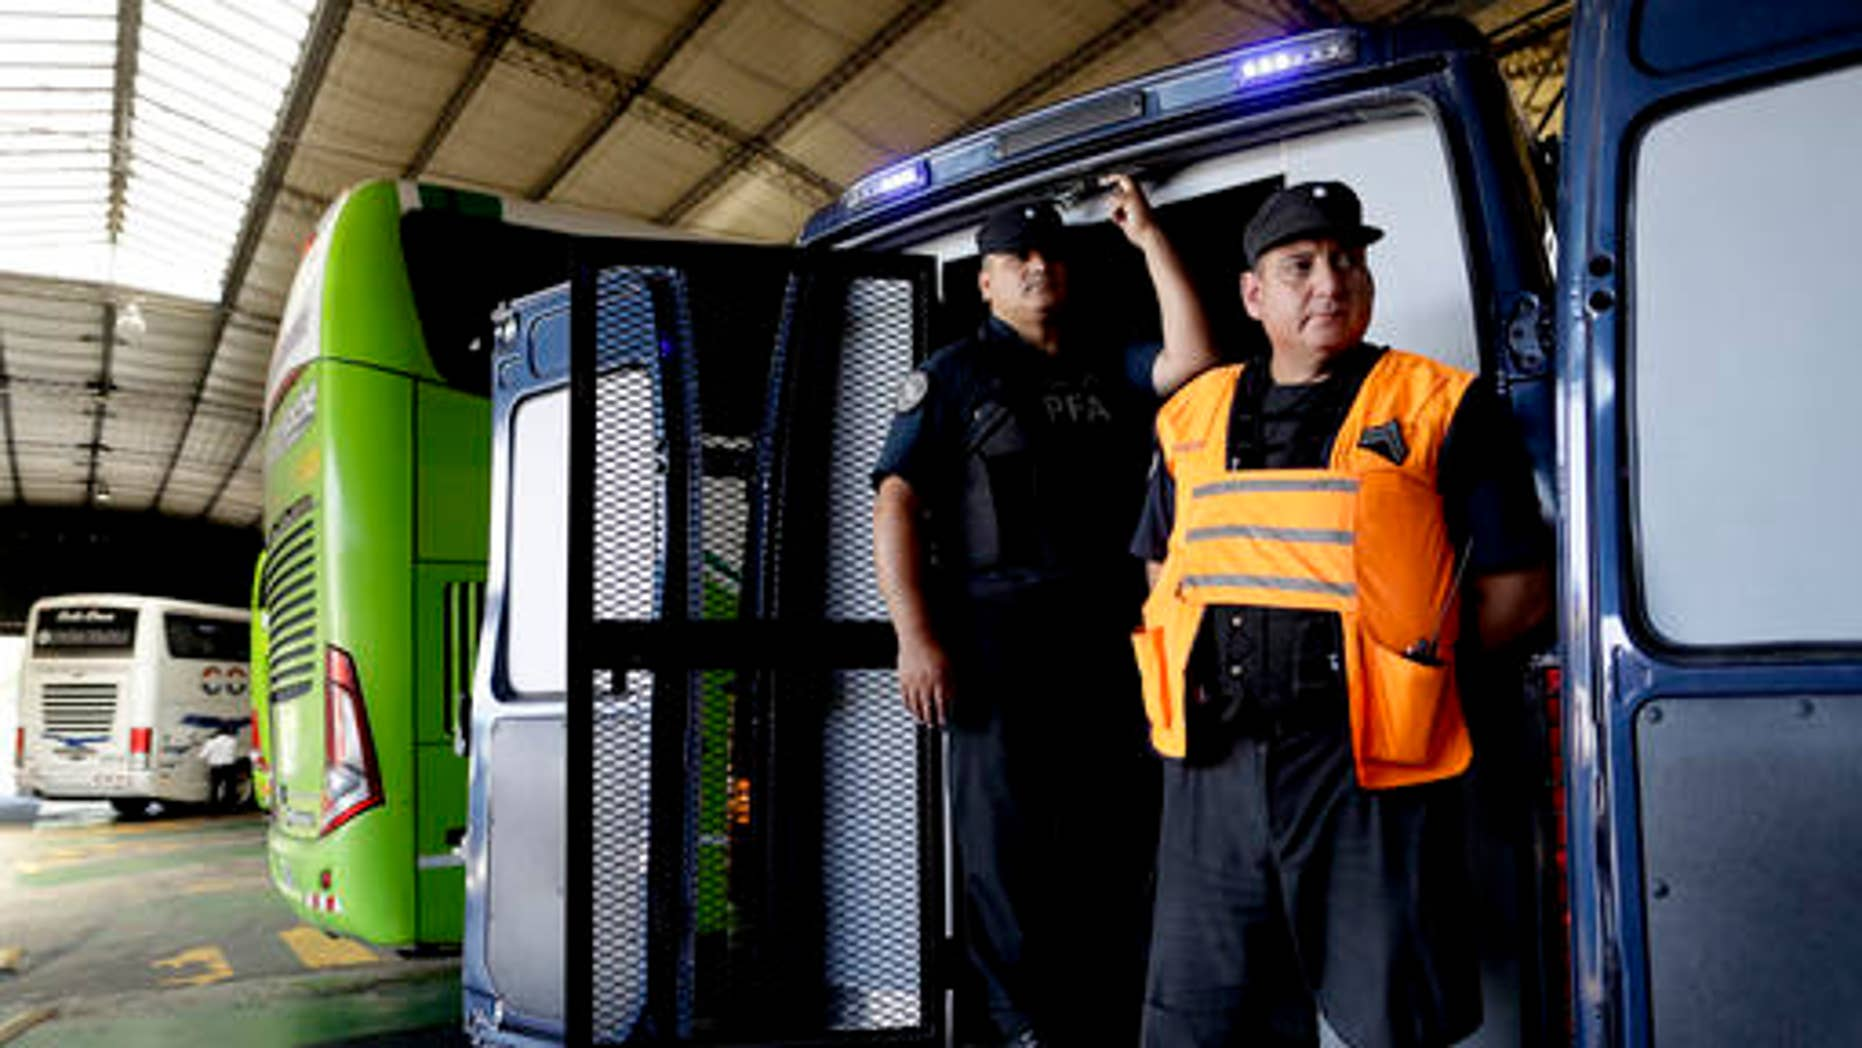 Police guard vehicle holding bags confiscated at a bus station on the outskirts of Buenos Aires, Jan. 27, 2017